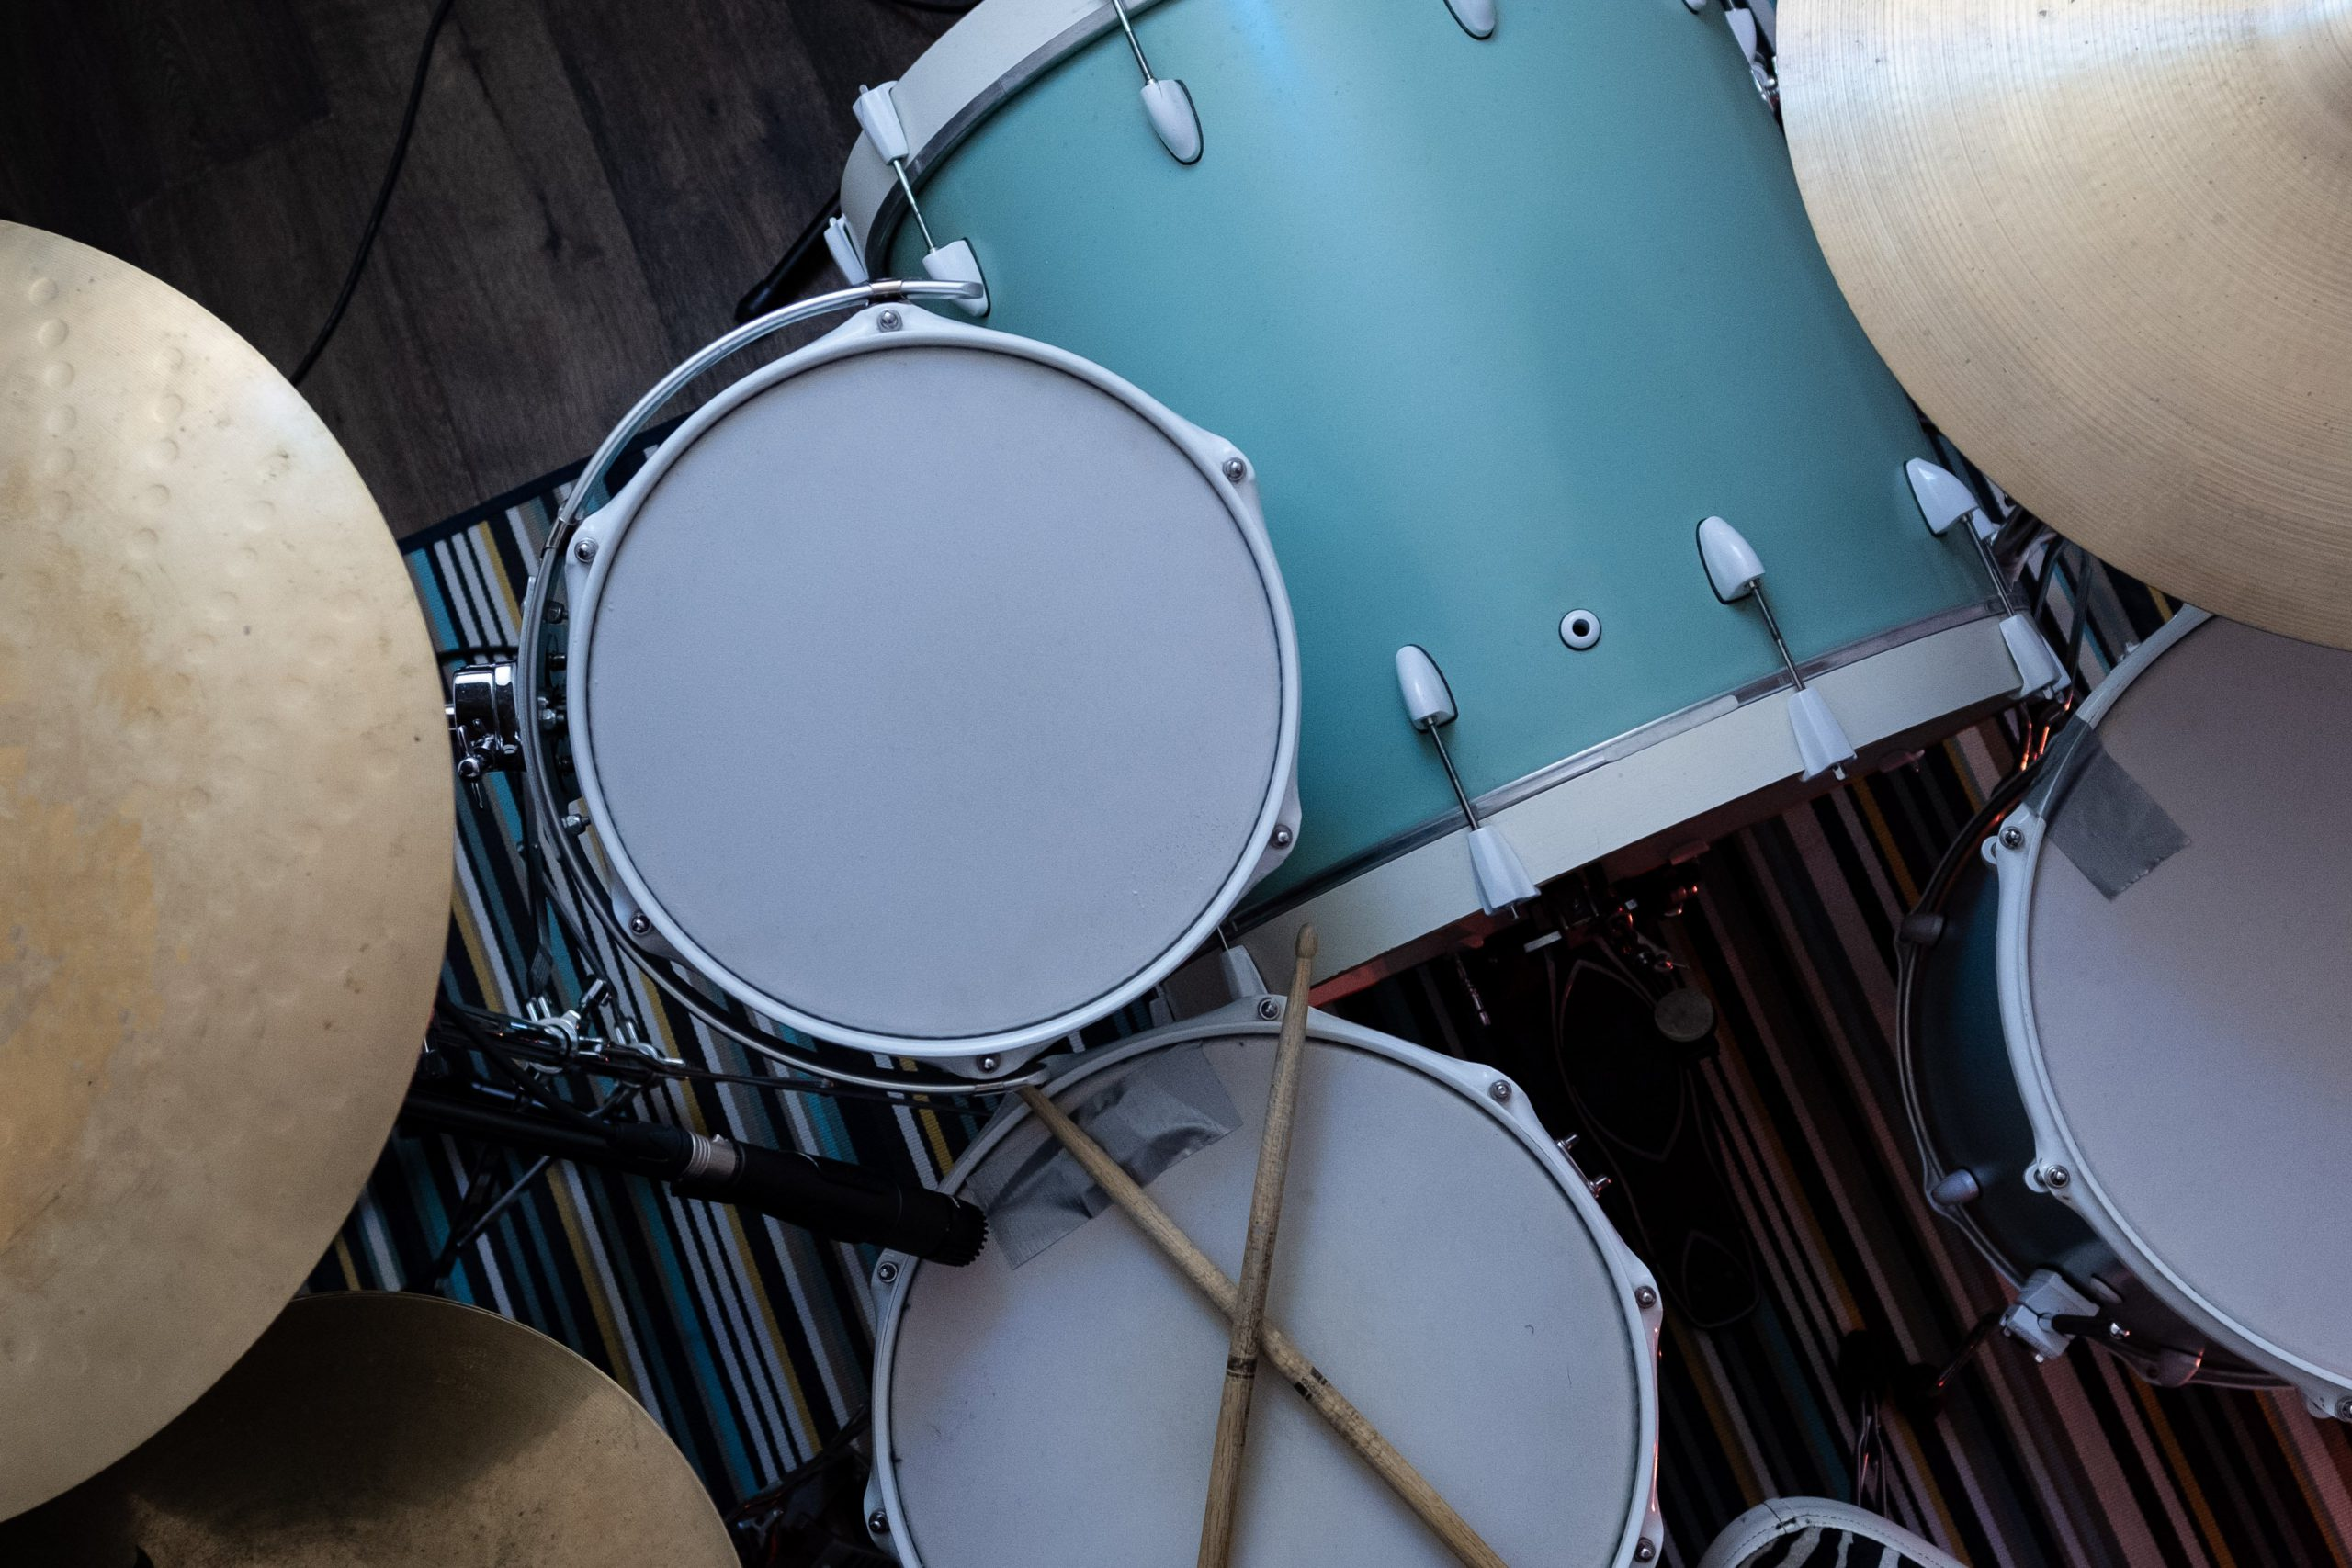 drum-set-overhead